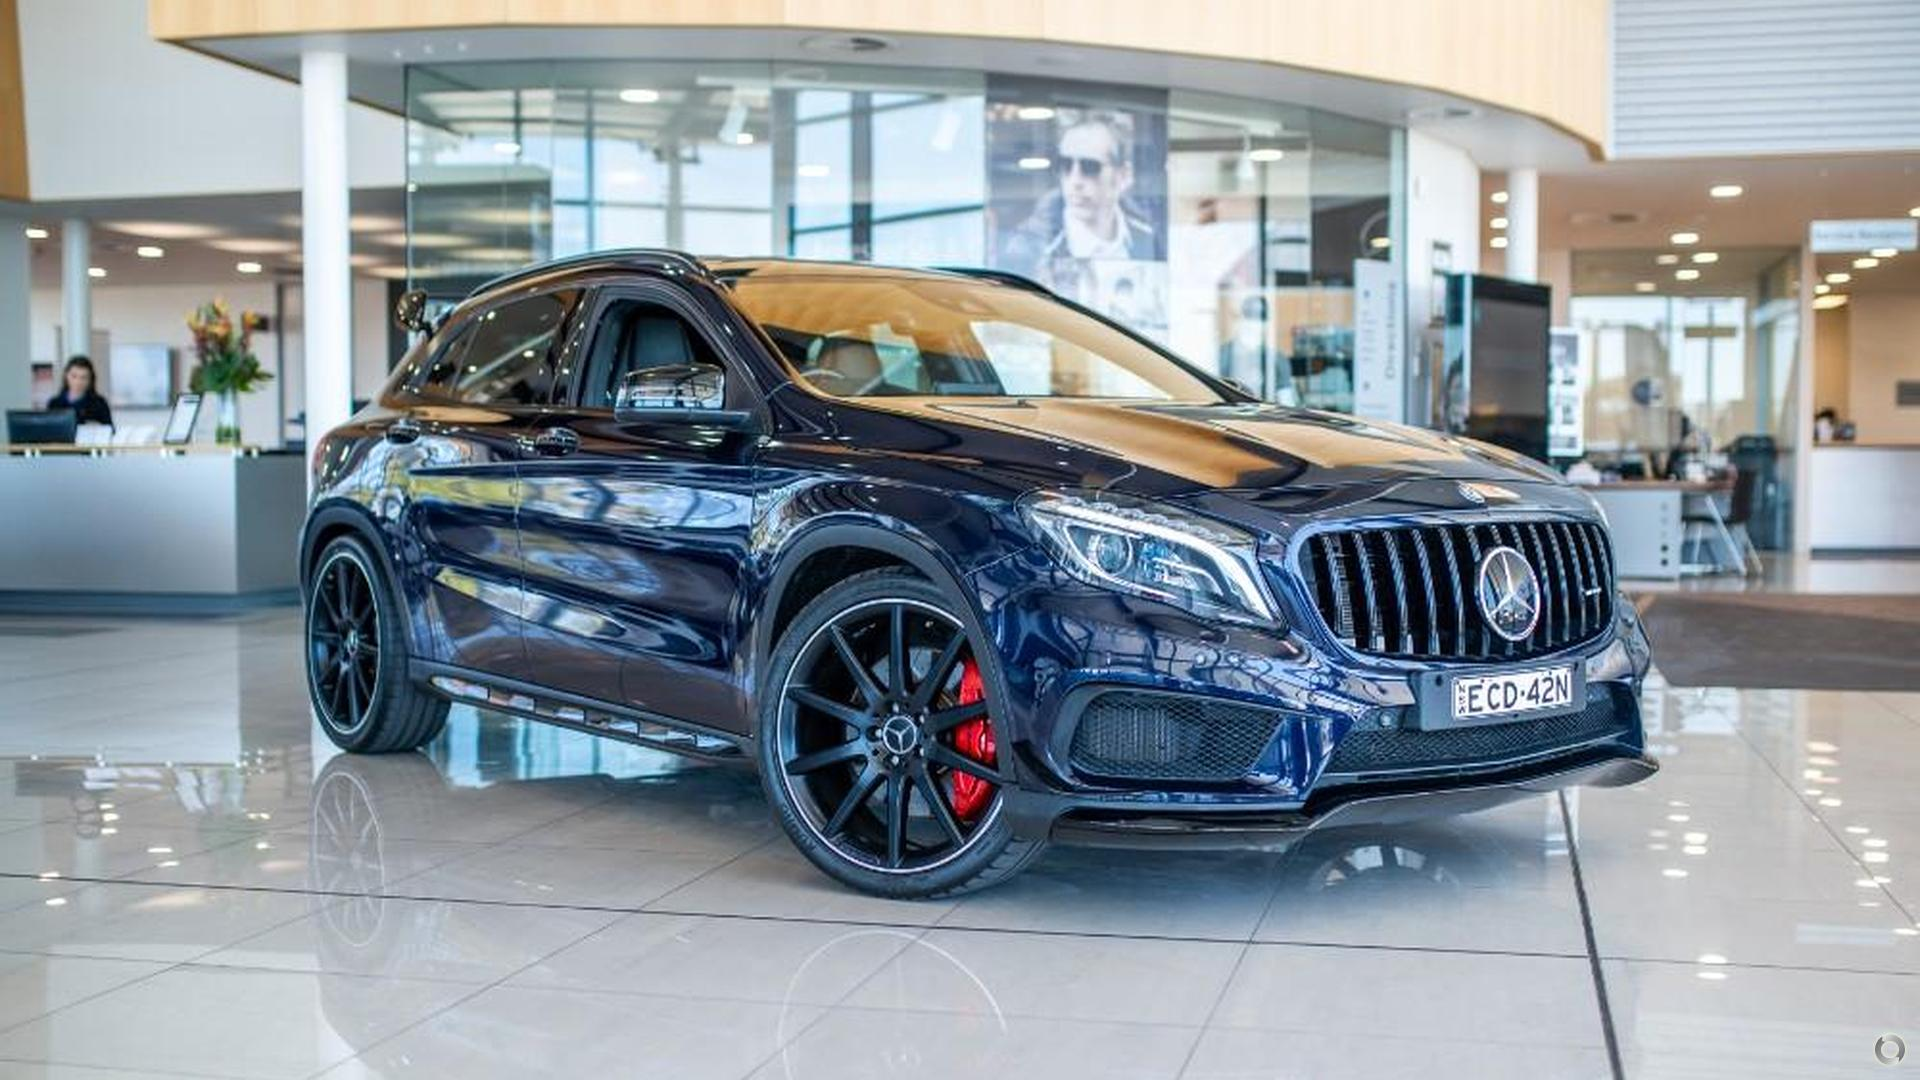 2016 Mercedes-Benz GLA 45 AMG Wagon